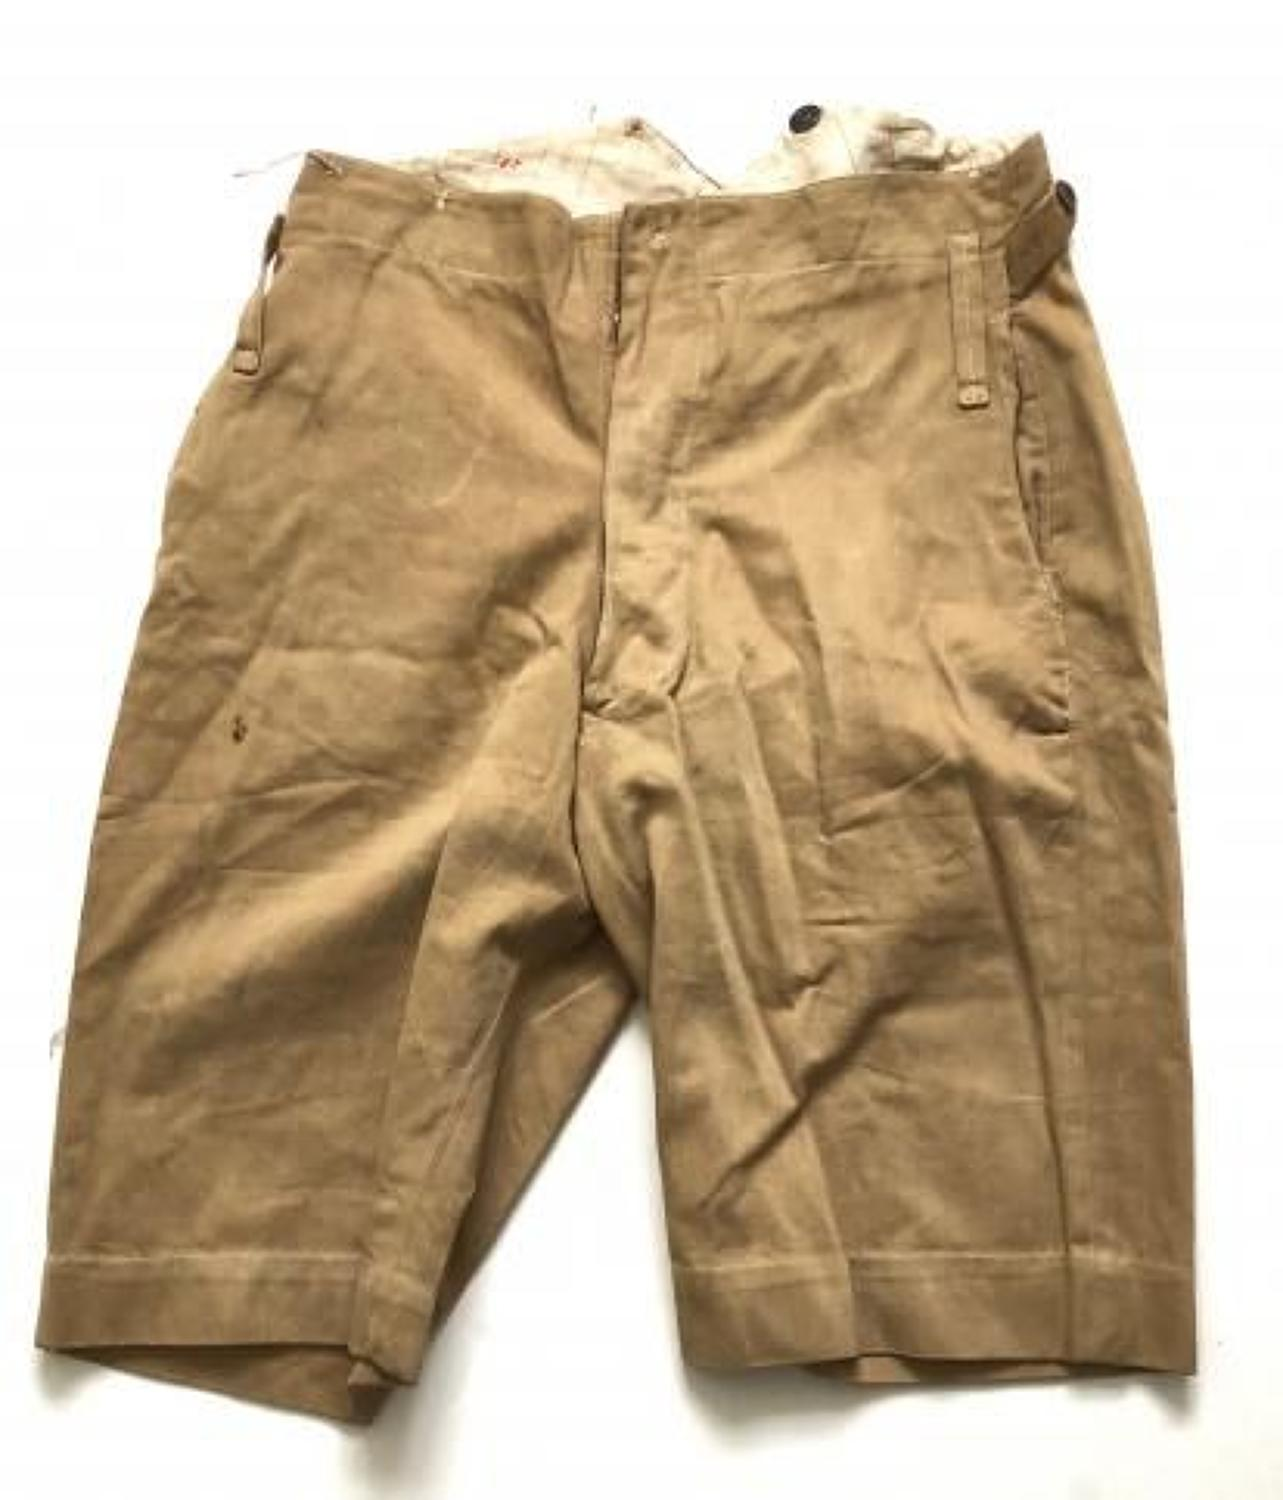 WW1 / WW2 Officer's Pattern KD Shorts,